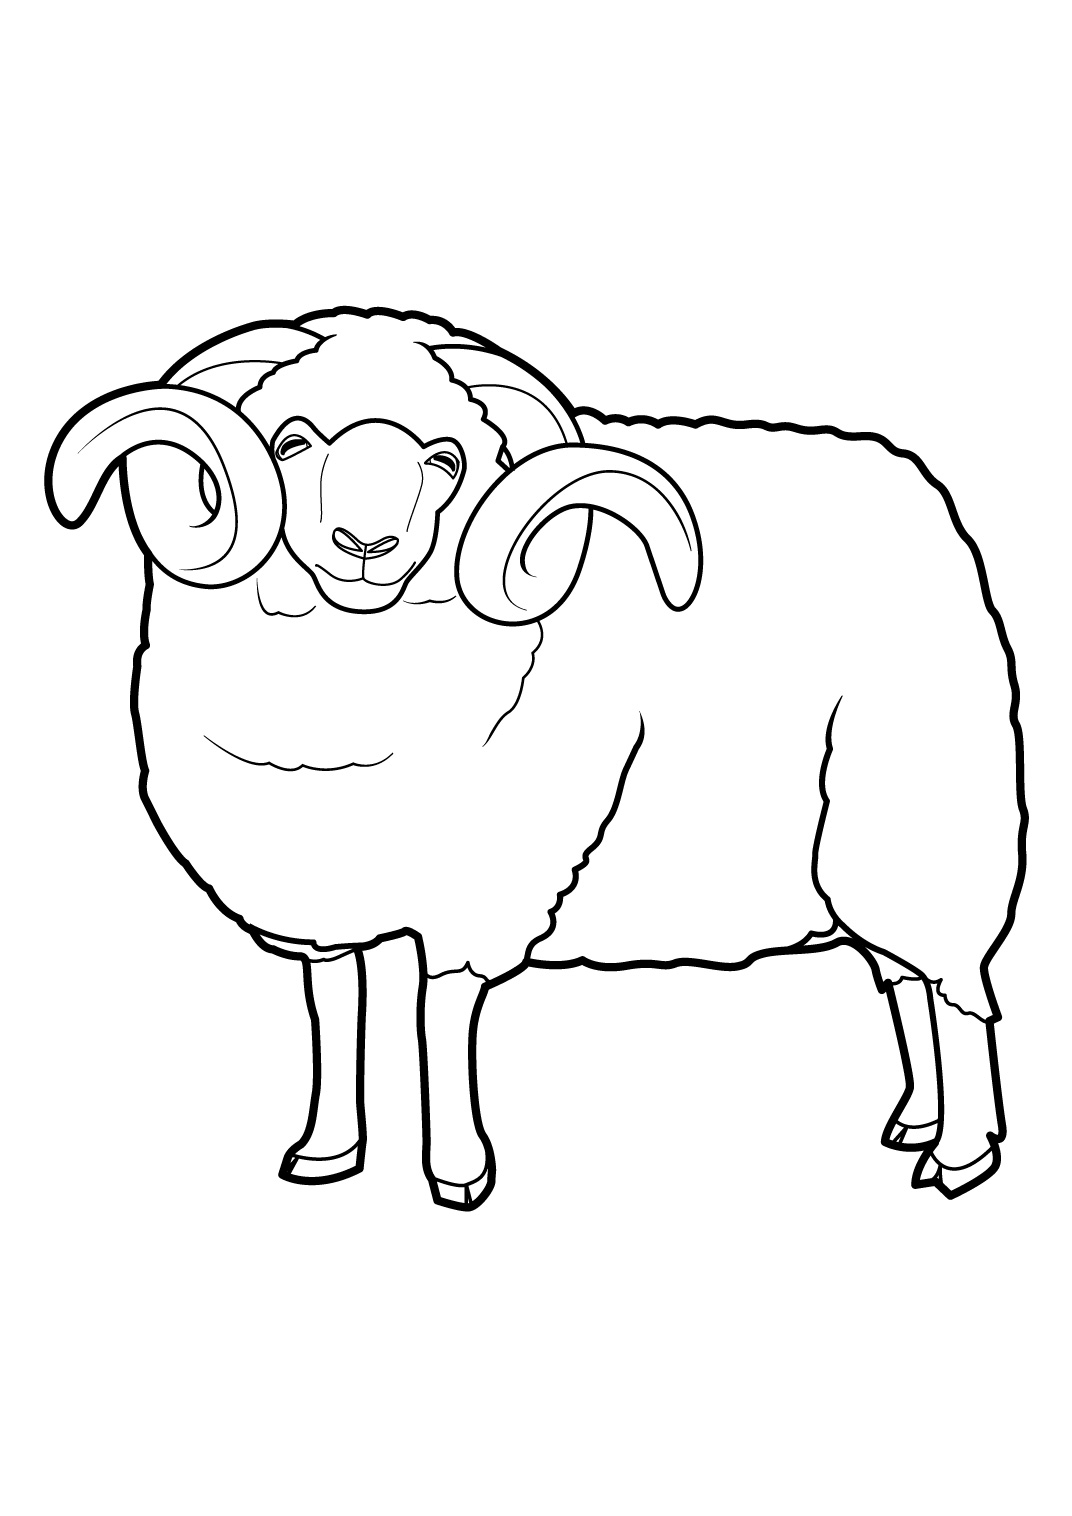 Coloriage Facile Mouton.119 Dessins De Coloriage Mouton A Imprimer